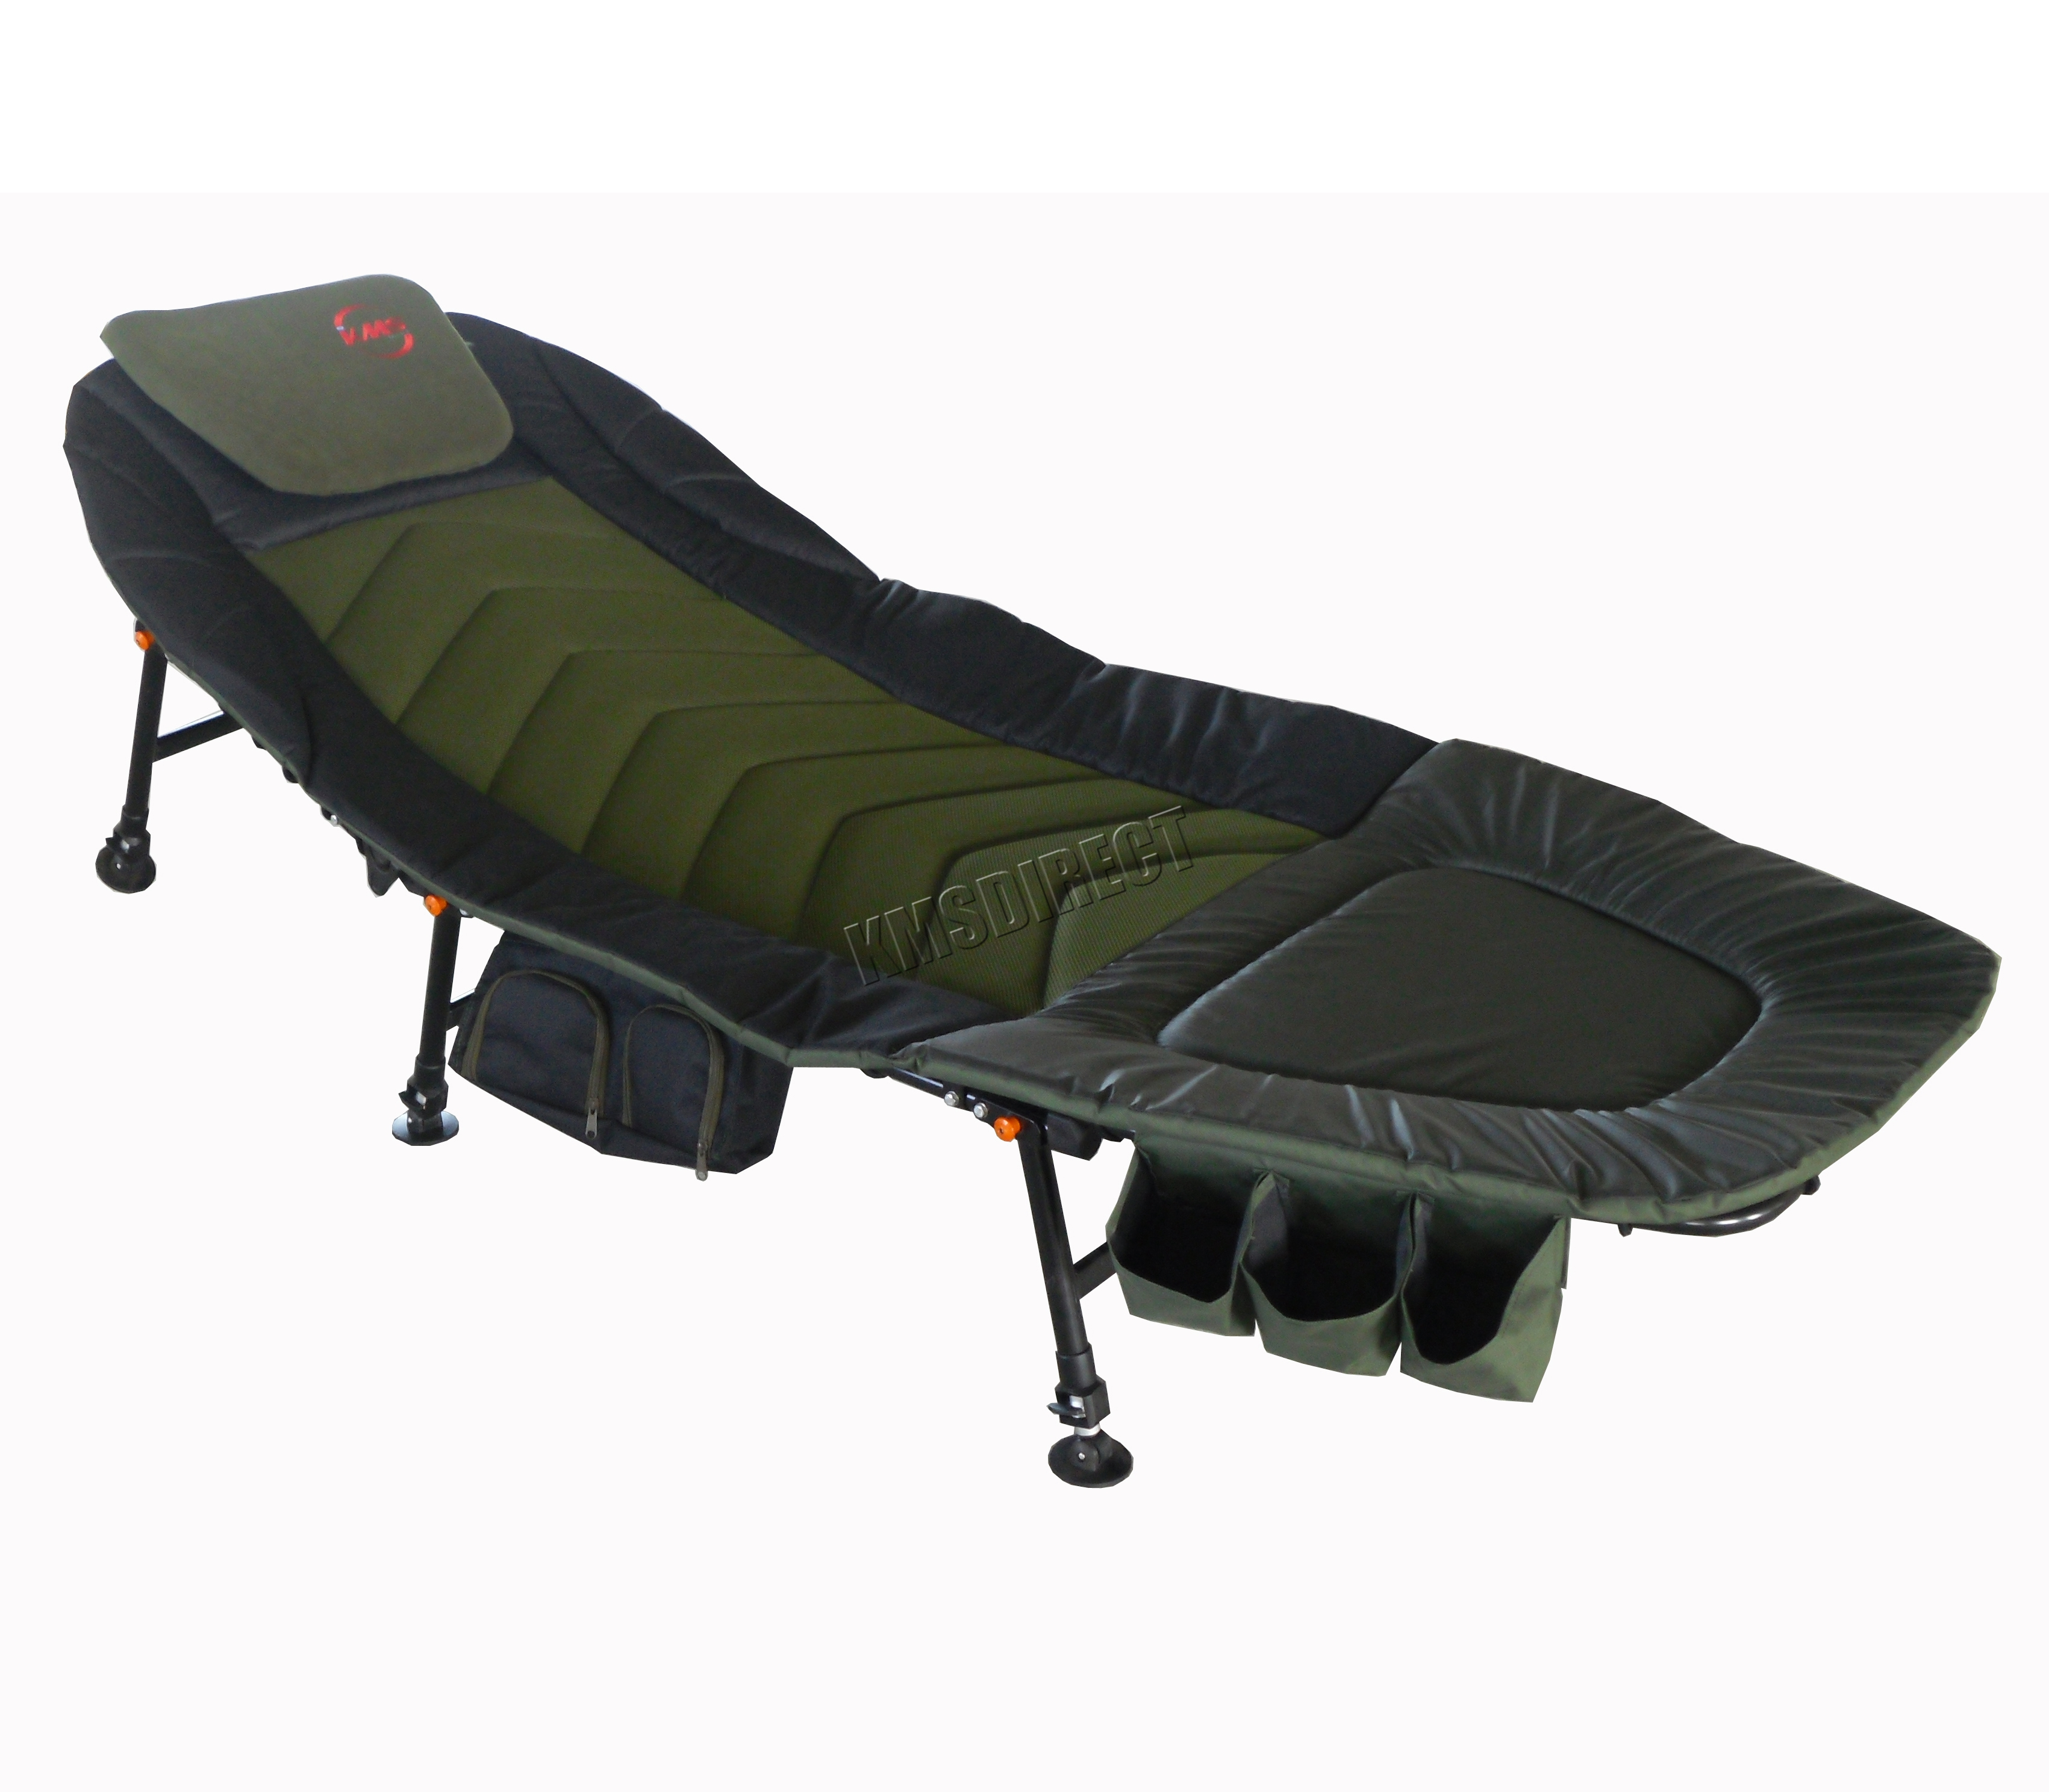 fishing chair bed reviews party covers buy camping bedchair 6 adjustable legs tool